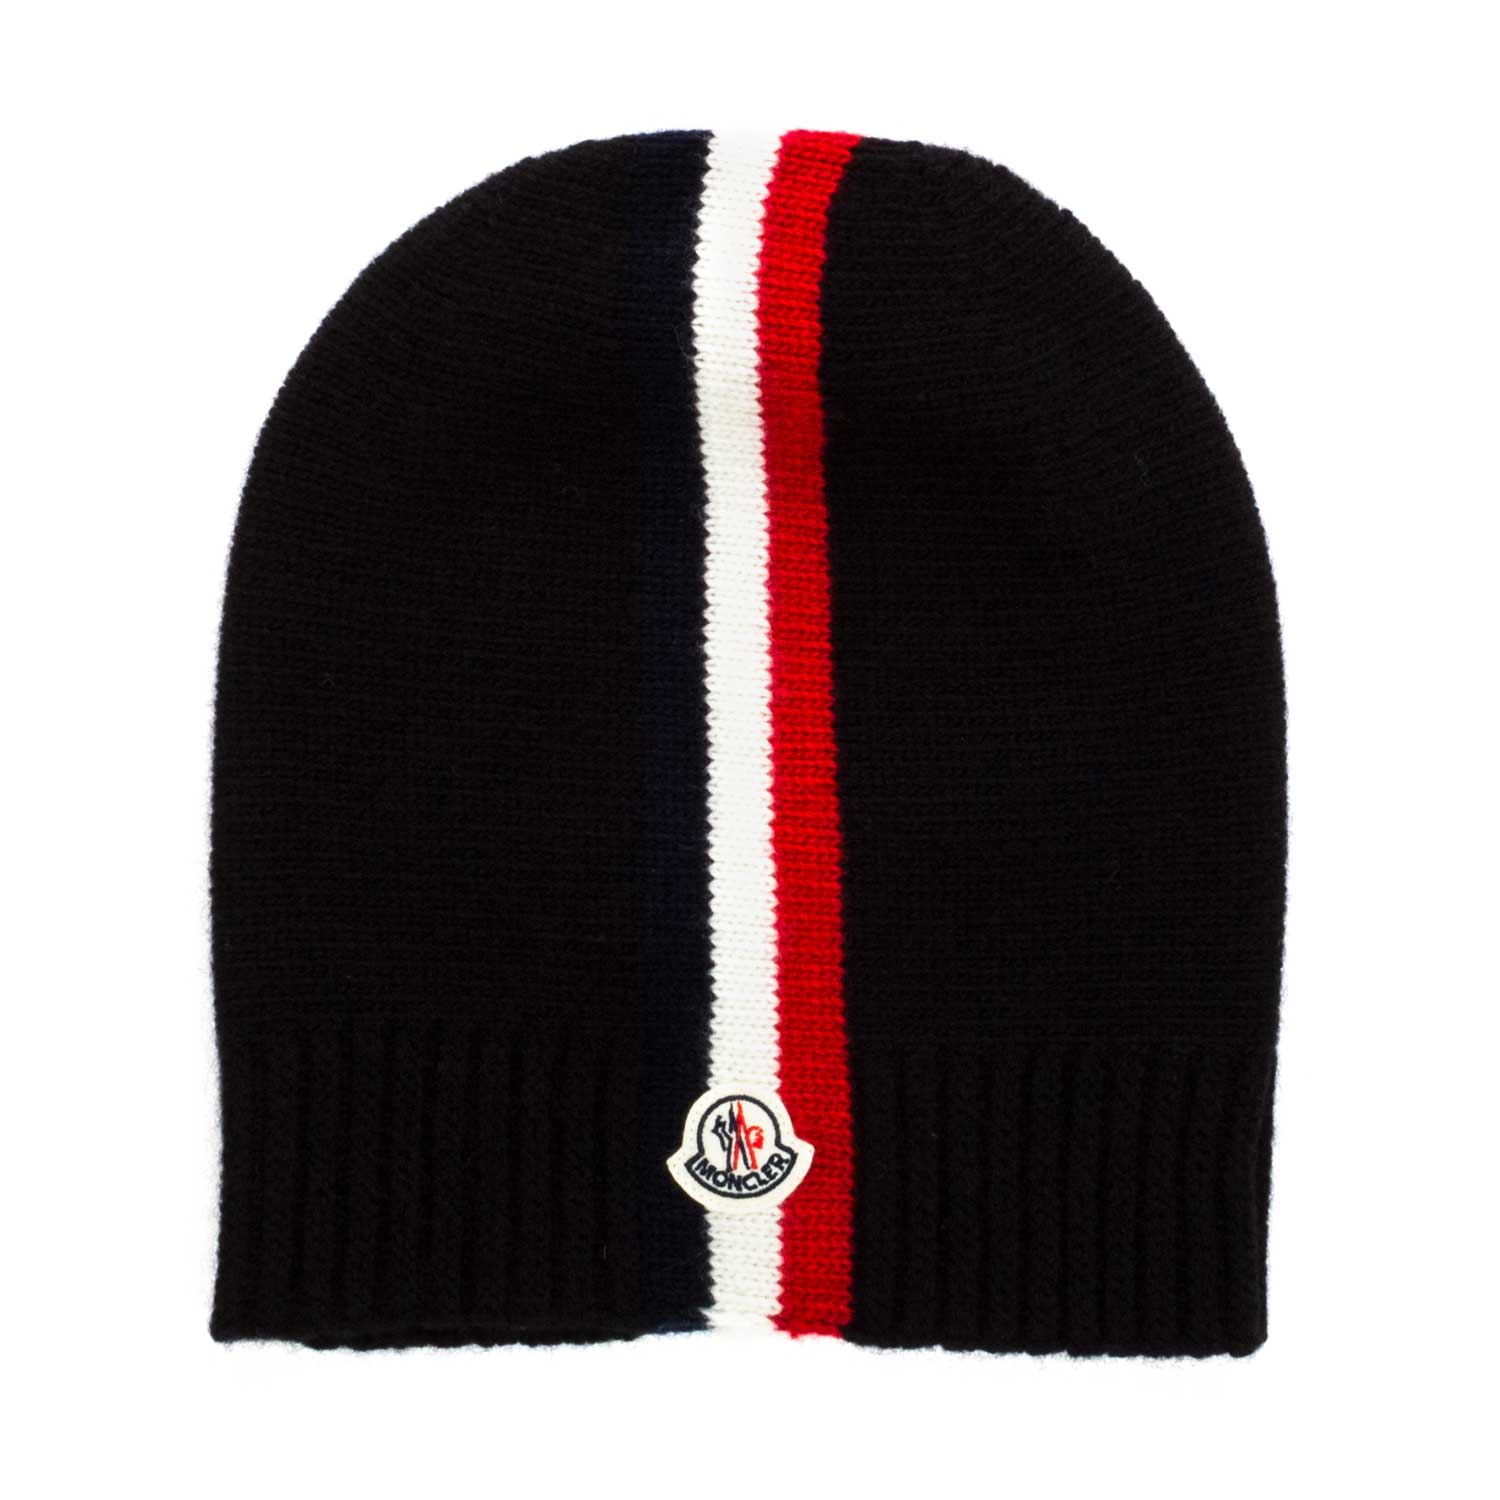 Home · MONCLER · Accessories hats headbands  Black Wool Hat For Boys.  26386-moncler cappello lana nero bambino-1.jpg 379bf60c851